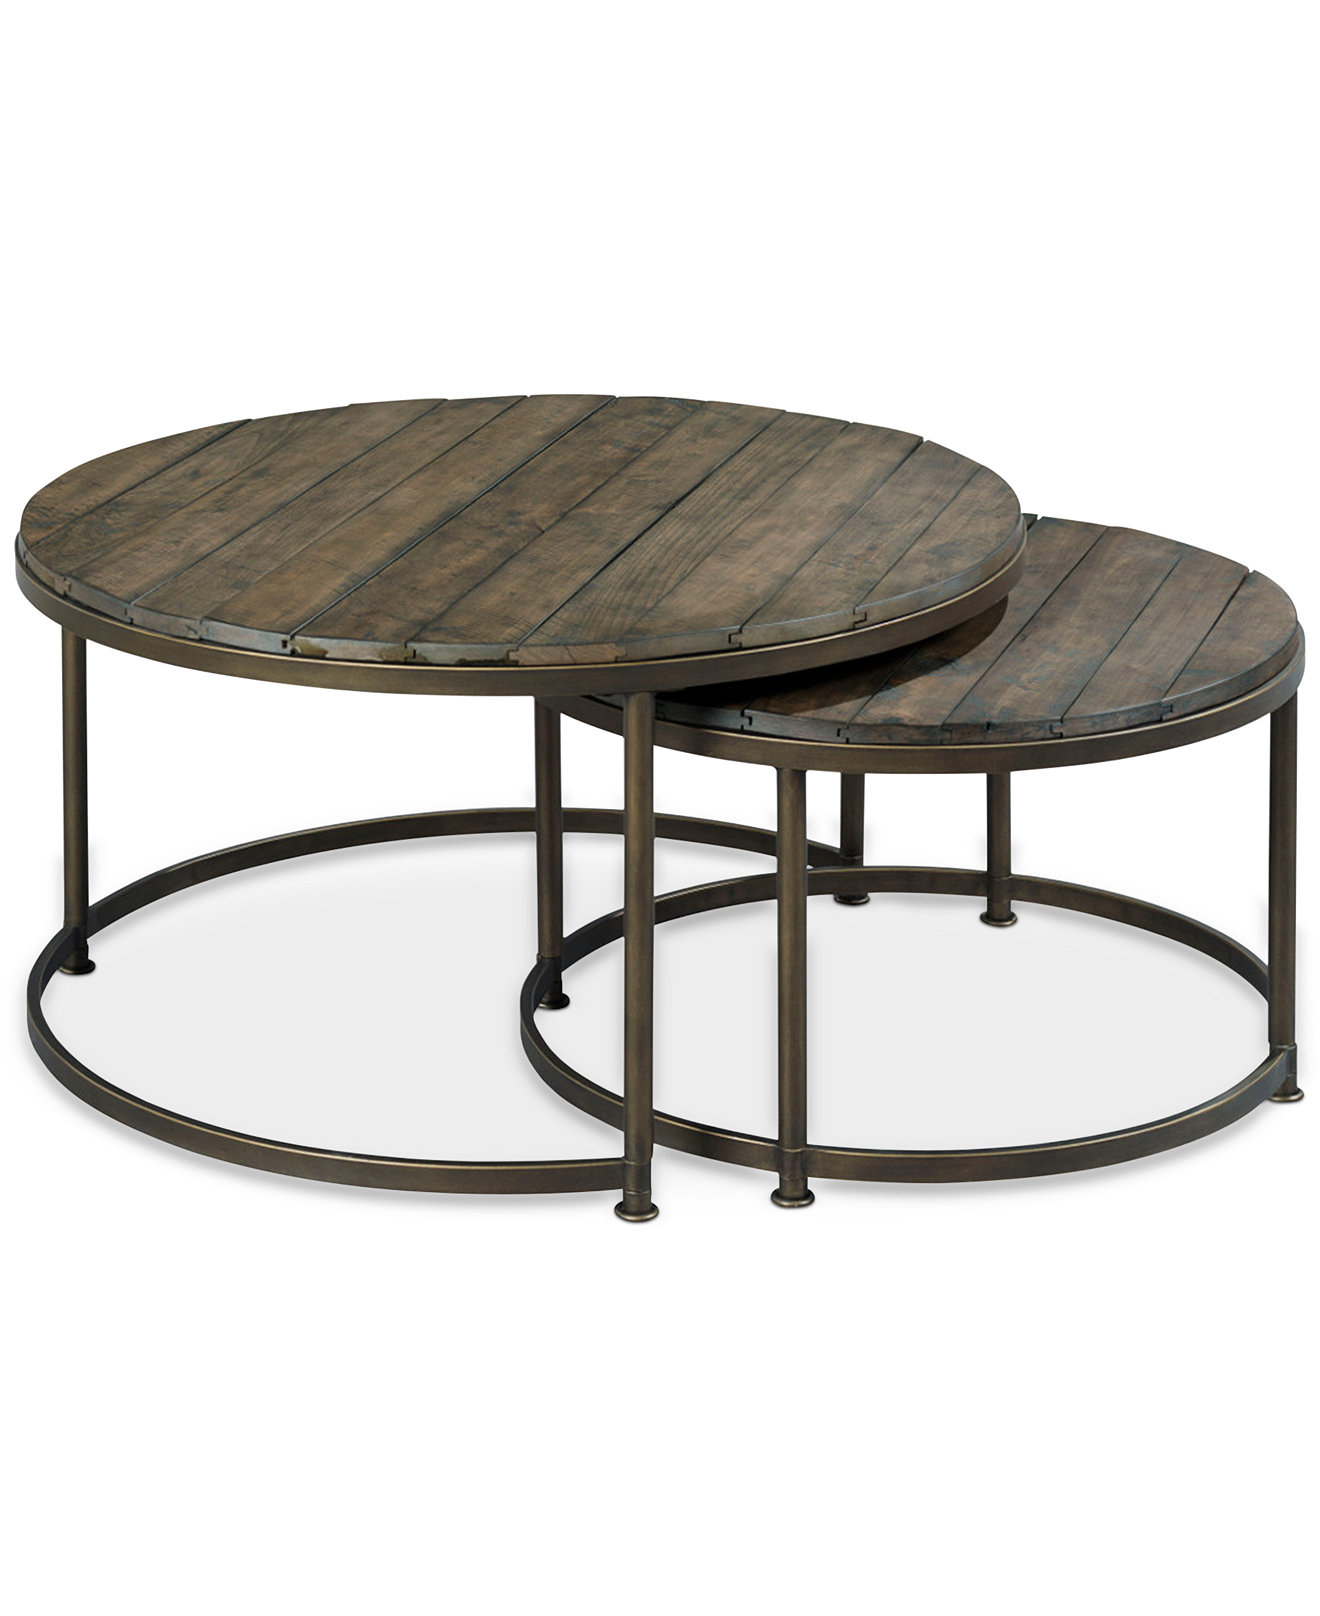 darley decor round contemporary color end diy lovell lighting hafley redmond parquet design drum ideas engaging trestle table darl painting lamps shades tables target lamp small